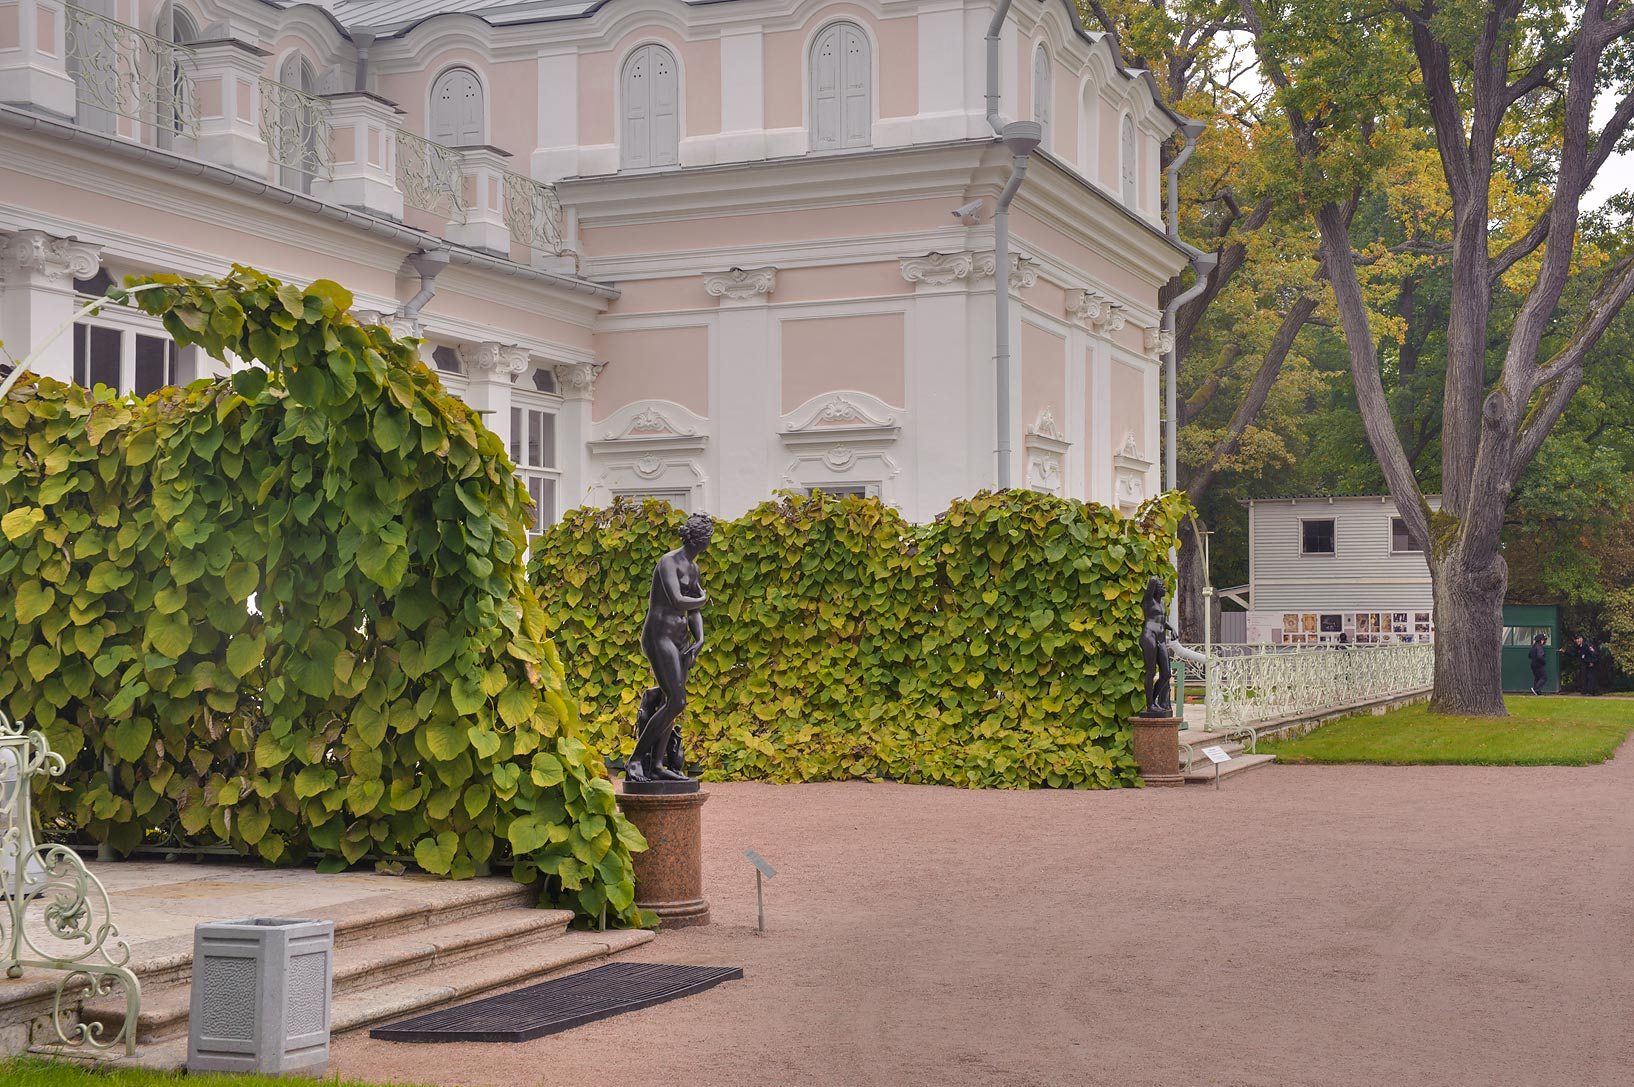 Backyard of Chinese Palace in Lomonosov (Oranienbaum). West from St.Petersburg, Russia